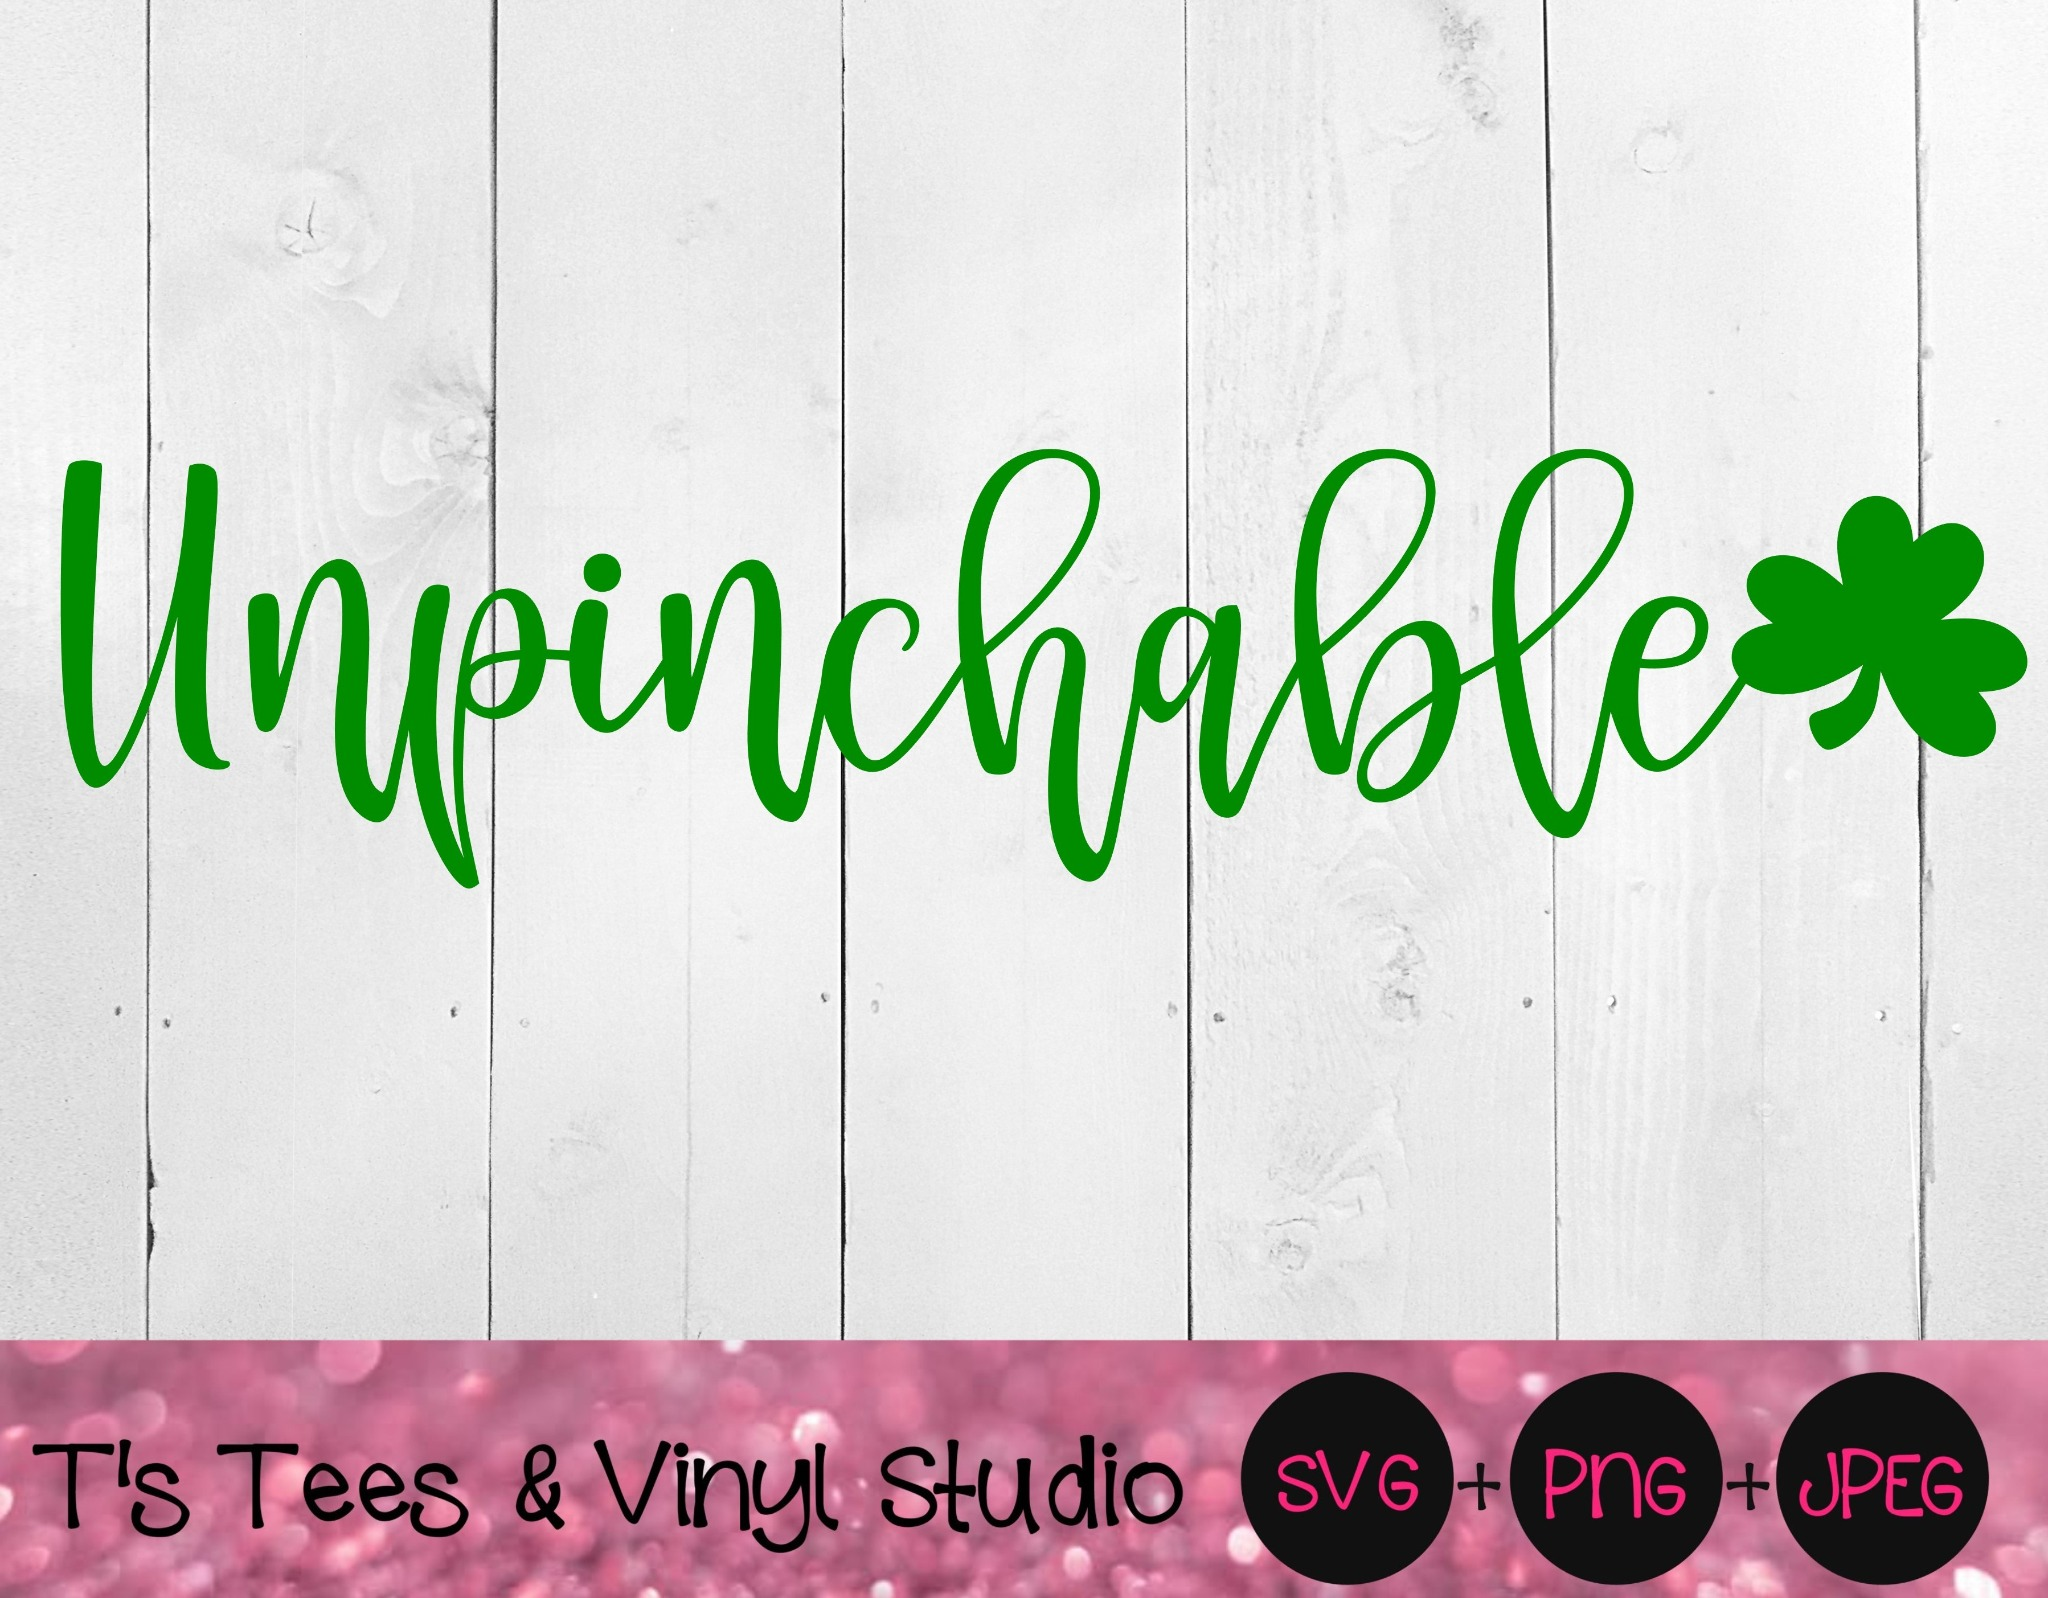 Unpinchable svg, Pinch Me svg, Can't Pinch Me svg, St Pat's Day, St Patrick's Day, Digital Download,